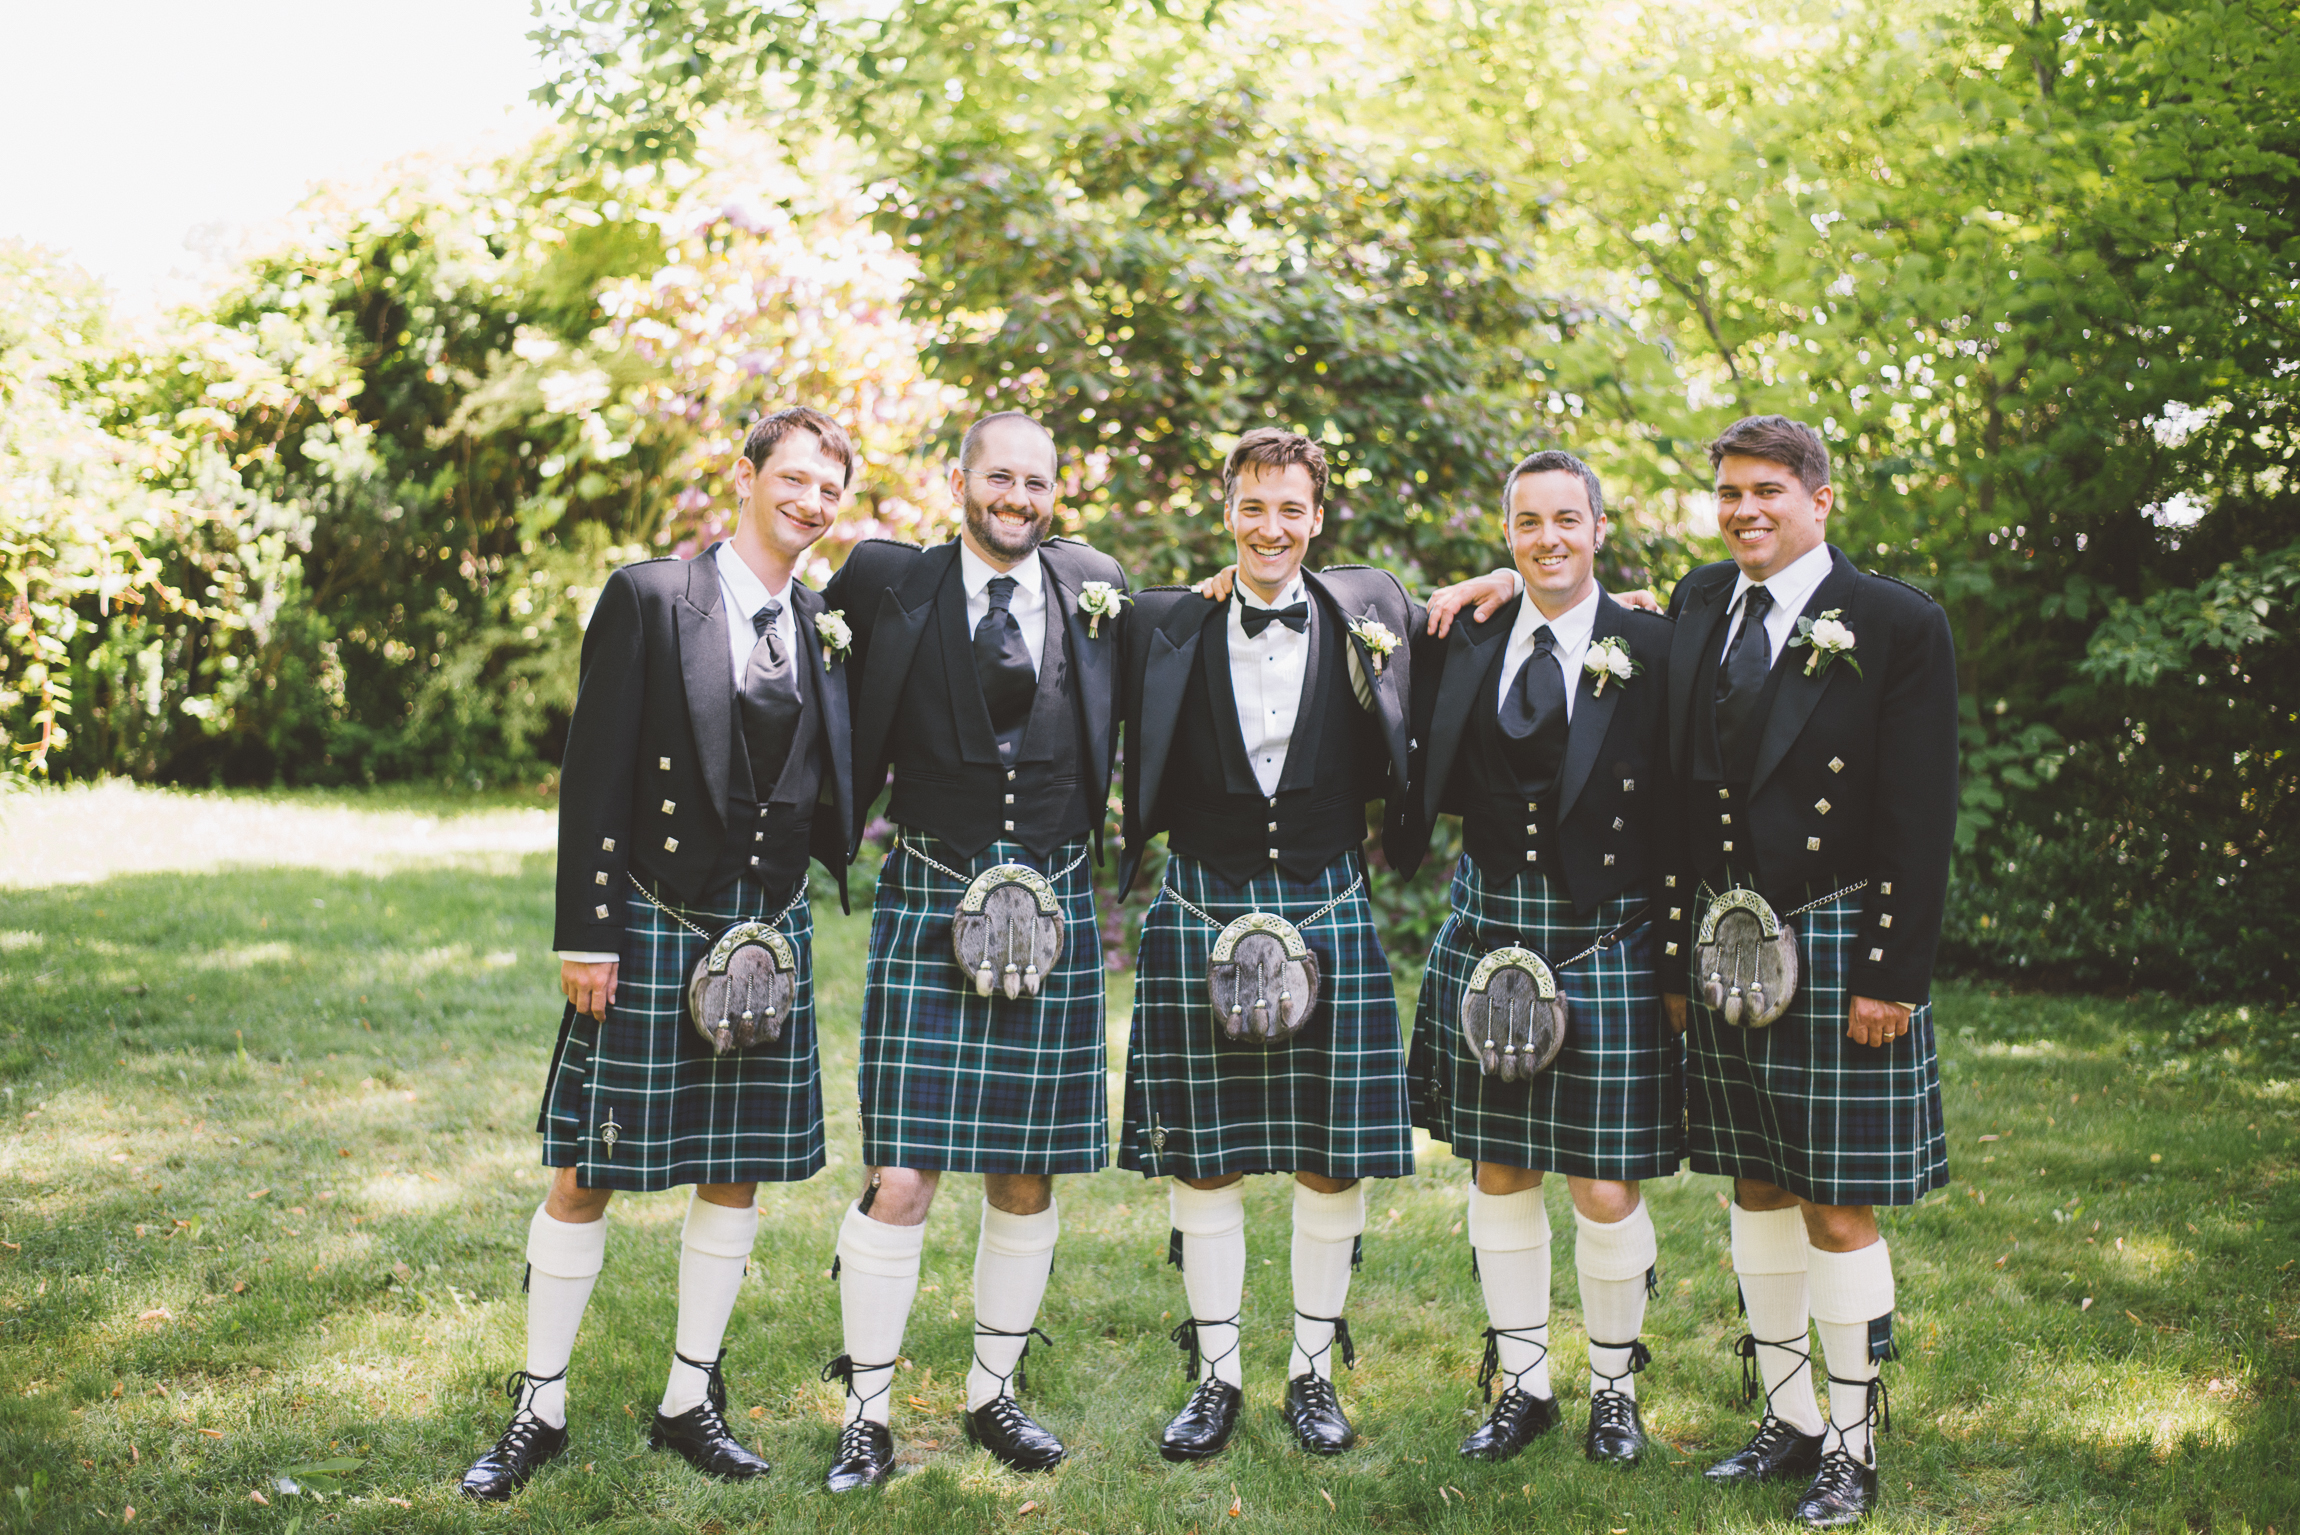 amanda cowley events niagara wedding planner kurtz orchard gracewood estate groomsmen traditional scottish kilt tartan attire sporan